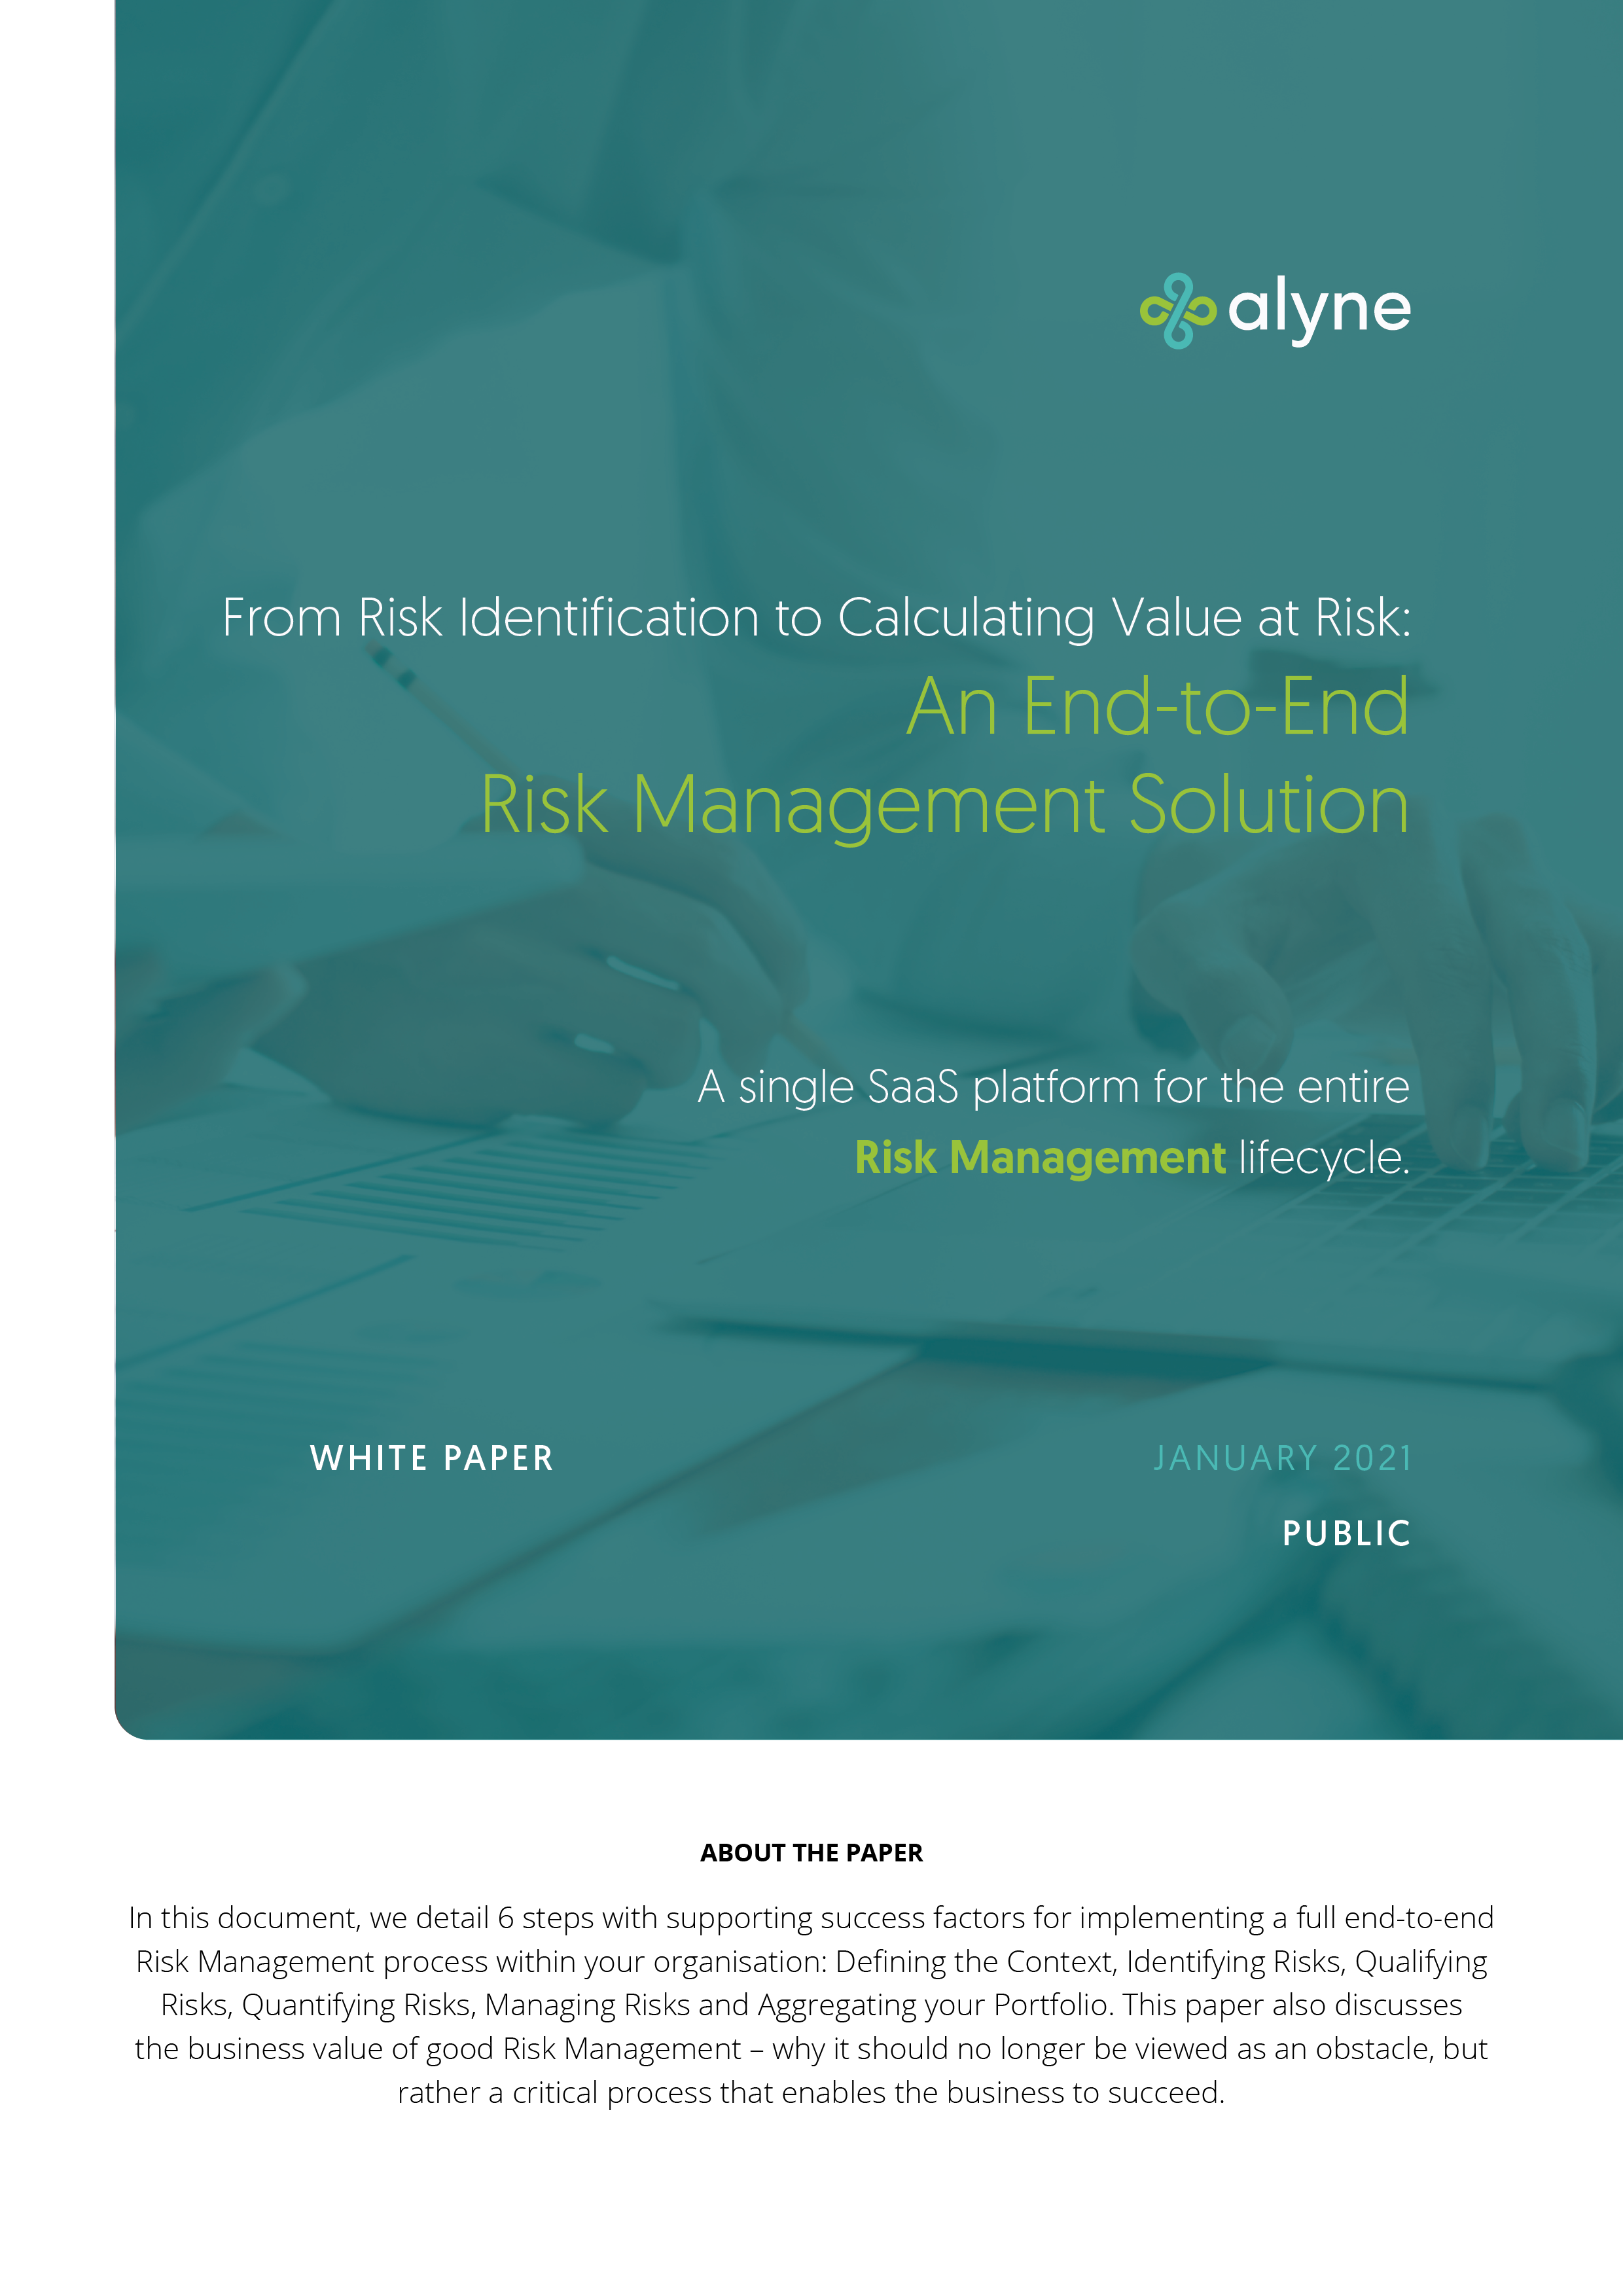 End to End Risk Management (Cover Image)